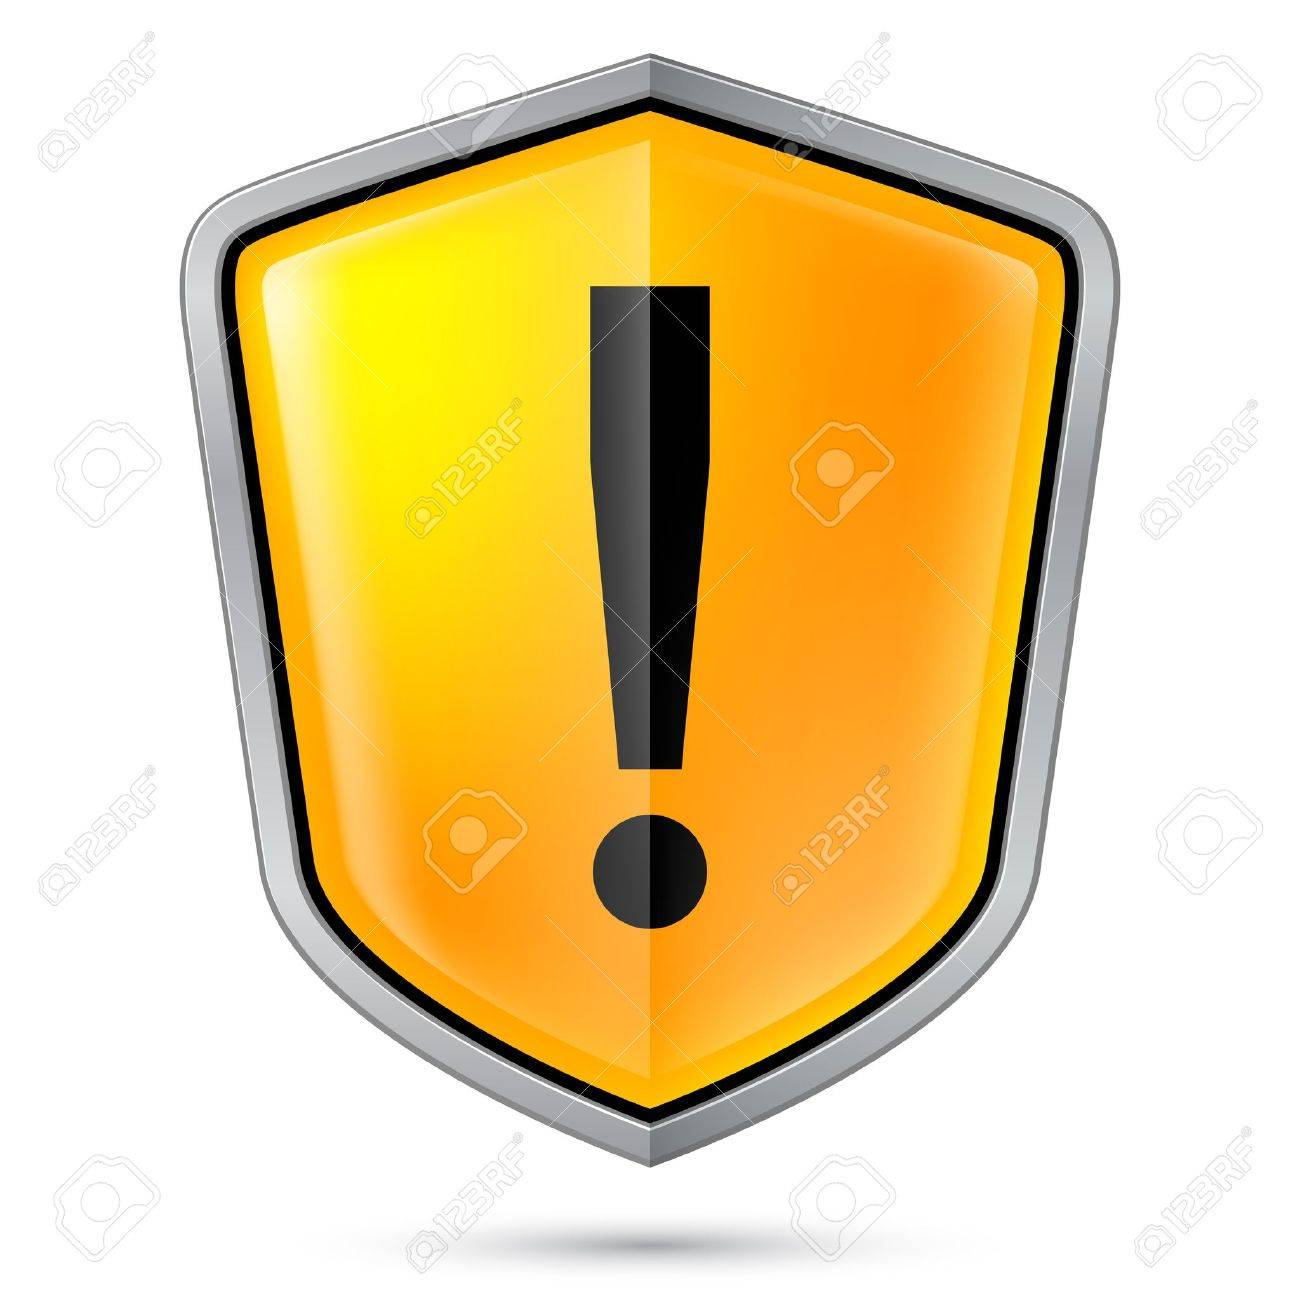 Warning sign icon on shield  Illustration on white Stock Vector - 21072155